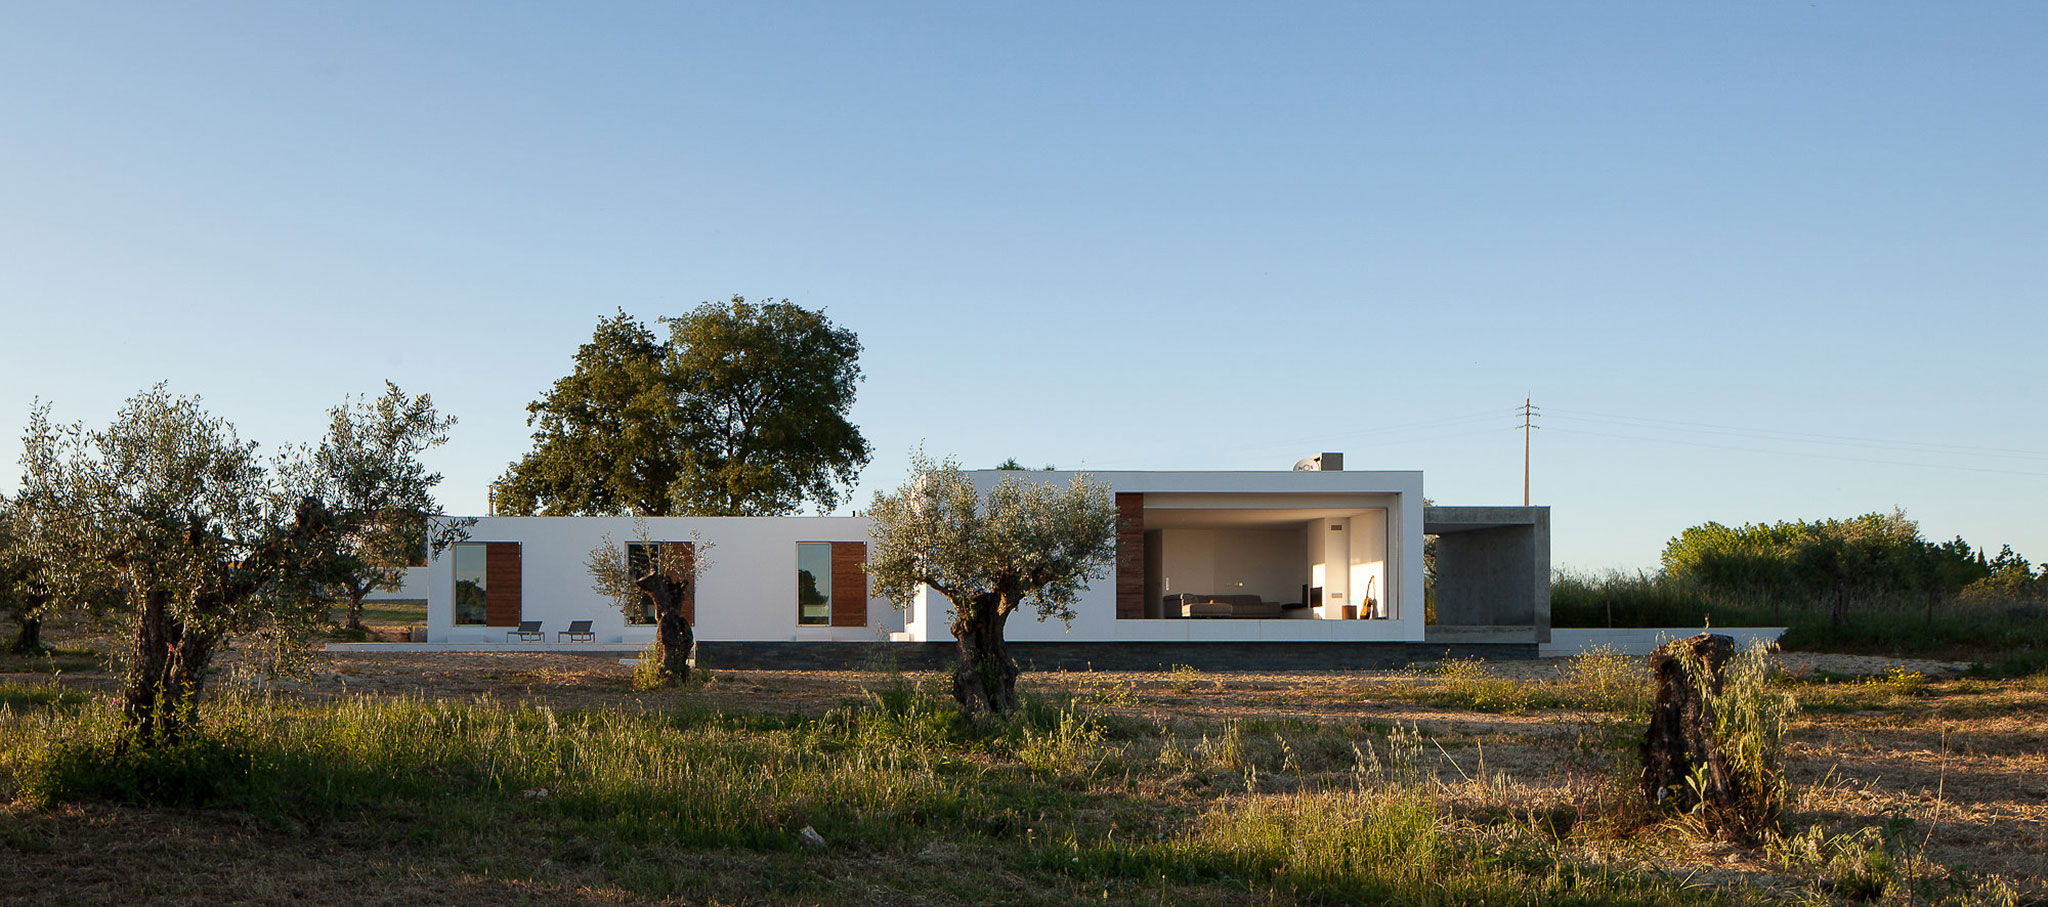 Ring House by Vasco Cabral + Sofia Saraiva  Architects. Photograph © José Campos